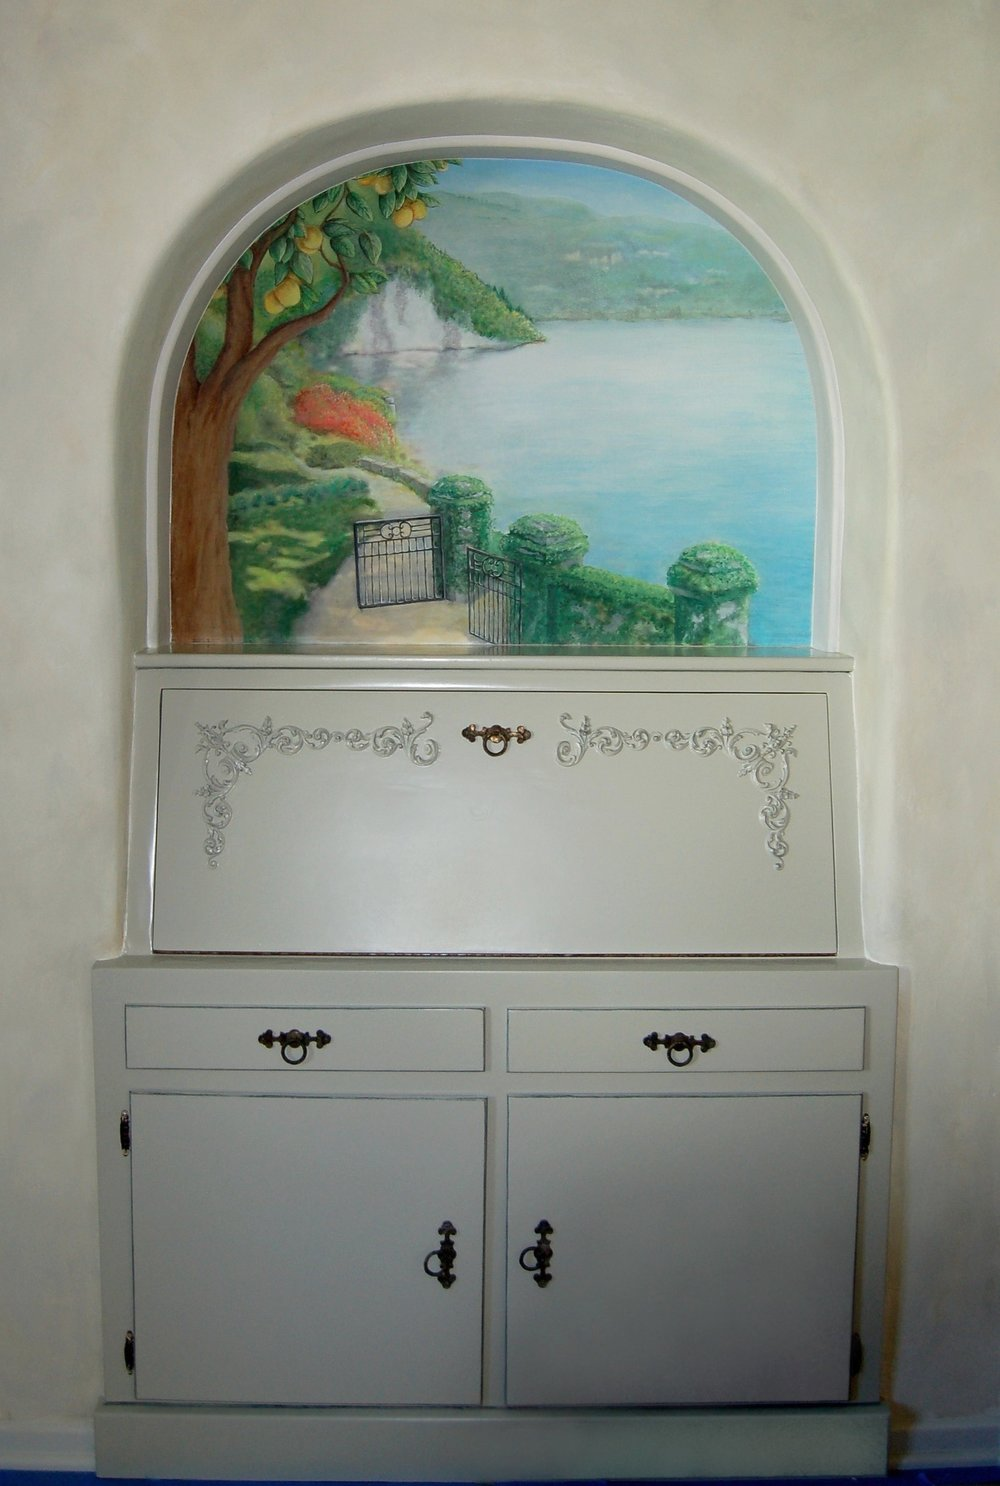 Once installed, a little touch up and colors were added to adjust the painting to the room and lighting.